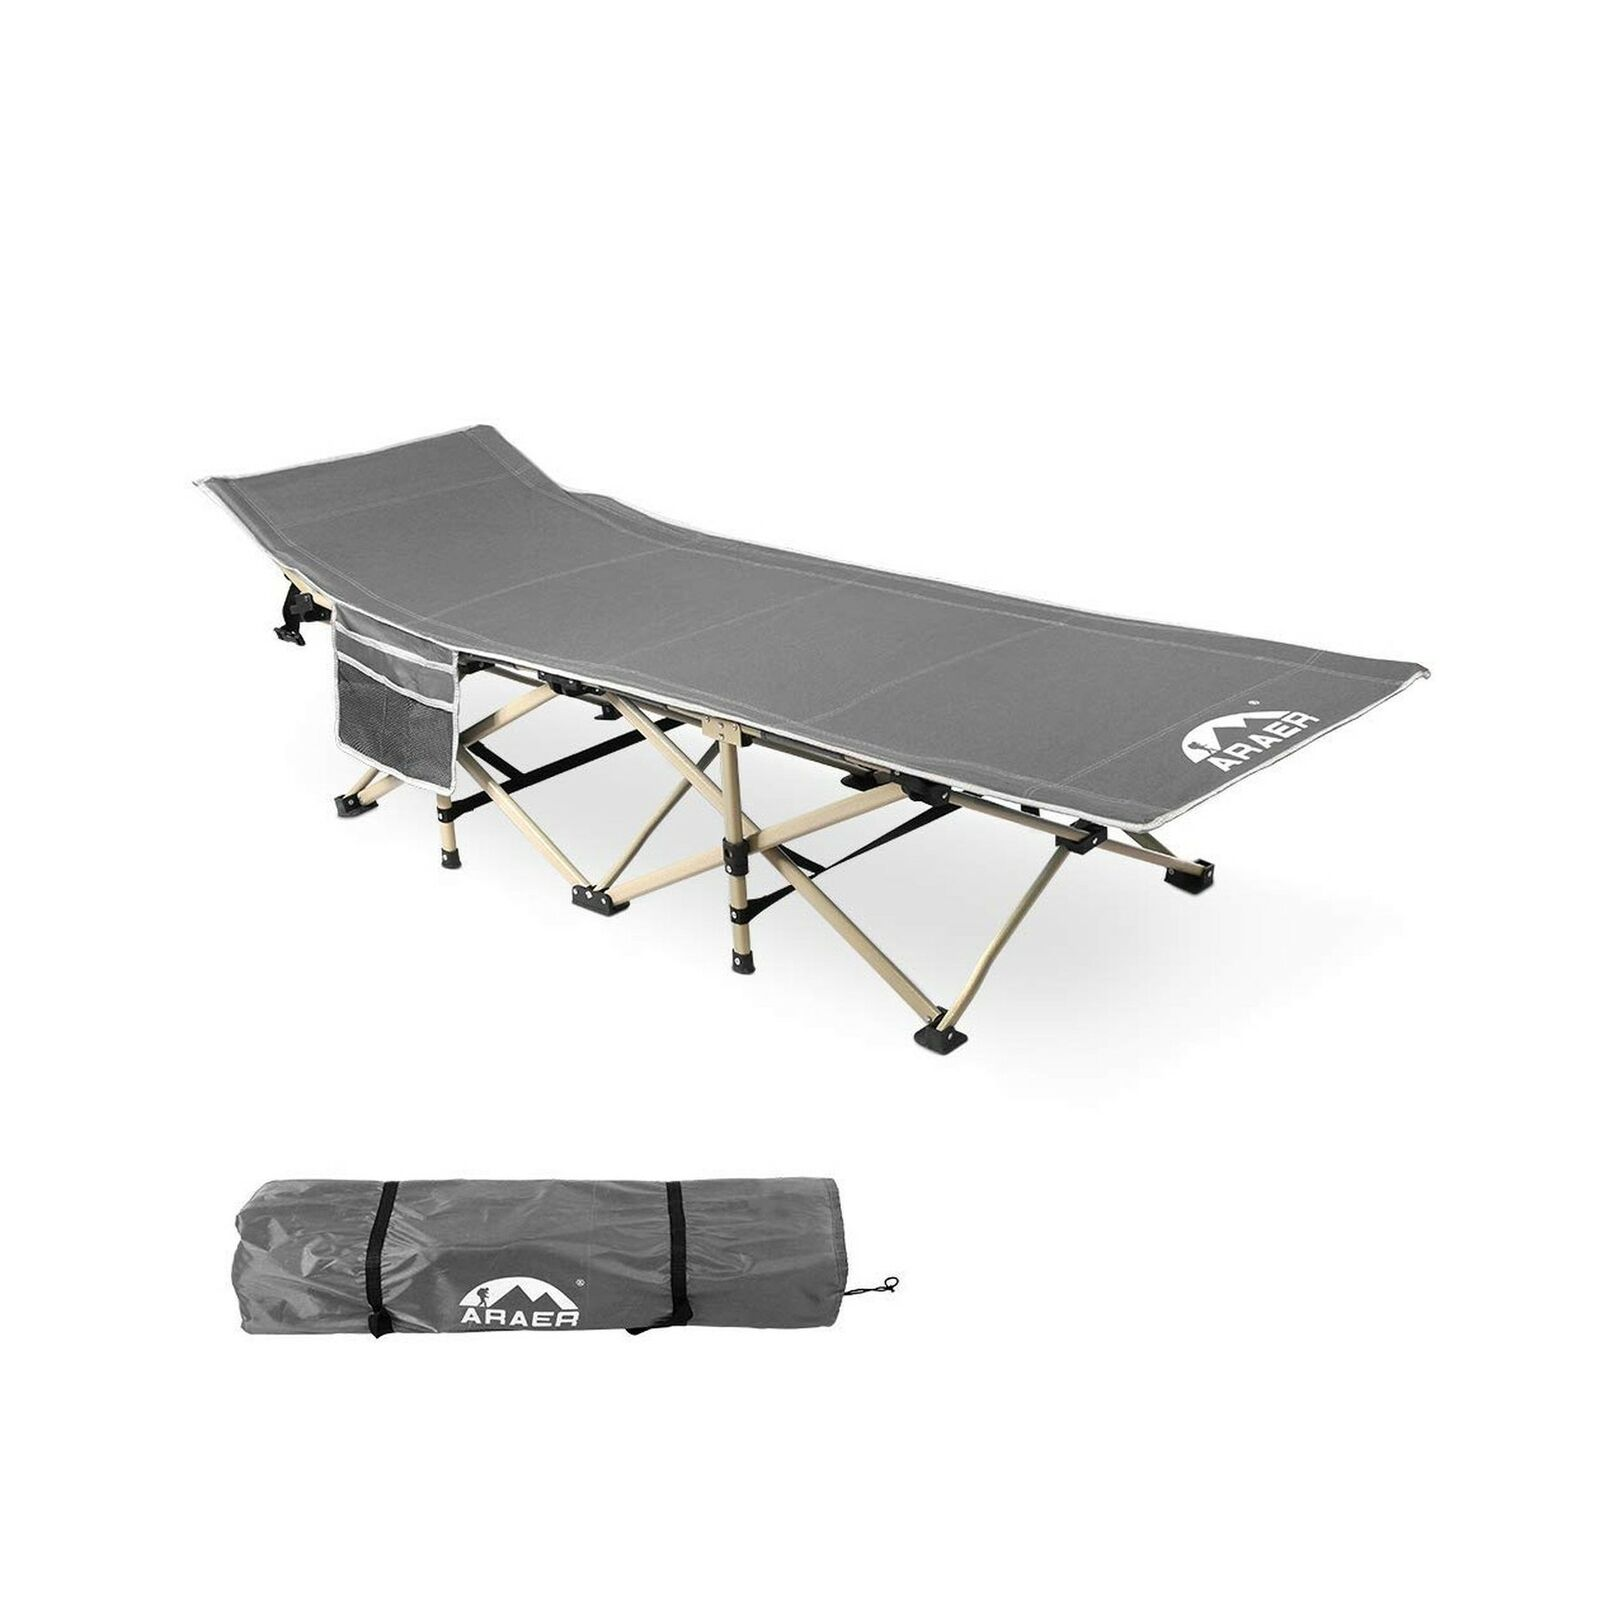 Camping Cot, 450LBSMax Load, Portable Foldable Outdoor Bed with Carry Bag f...